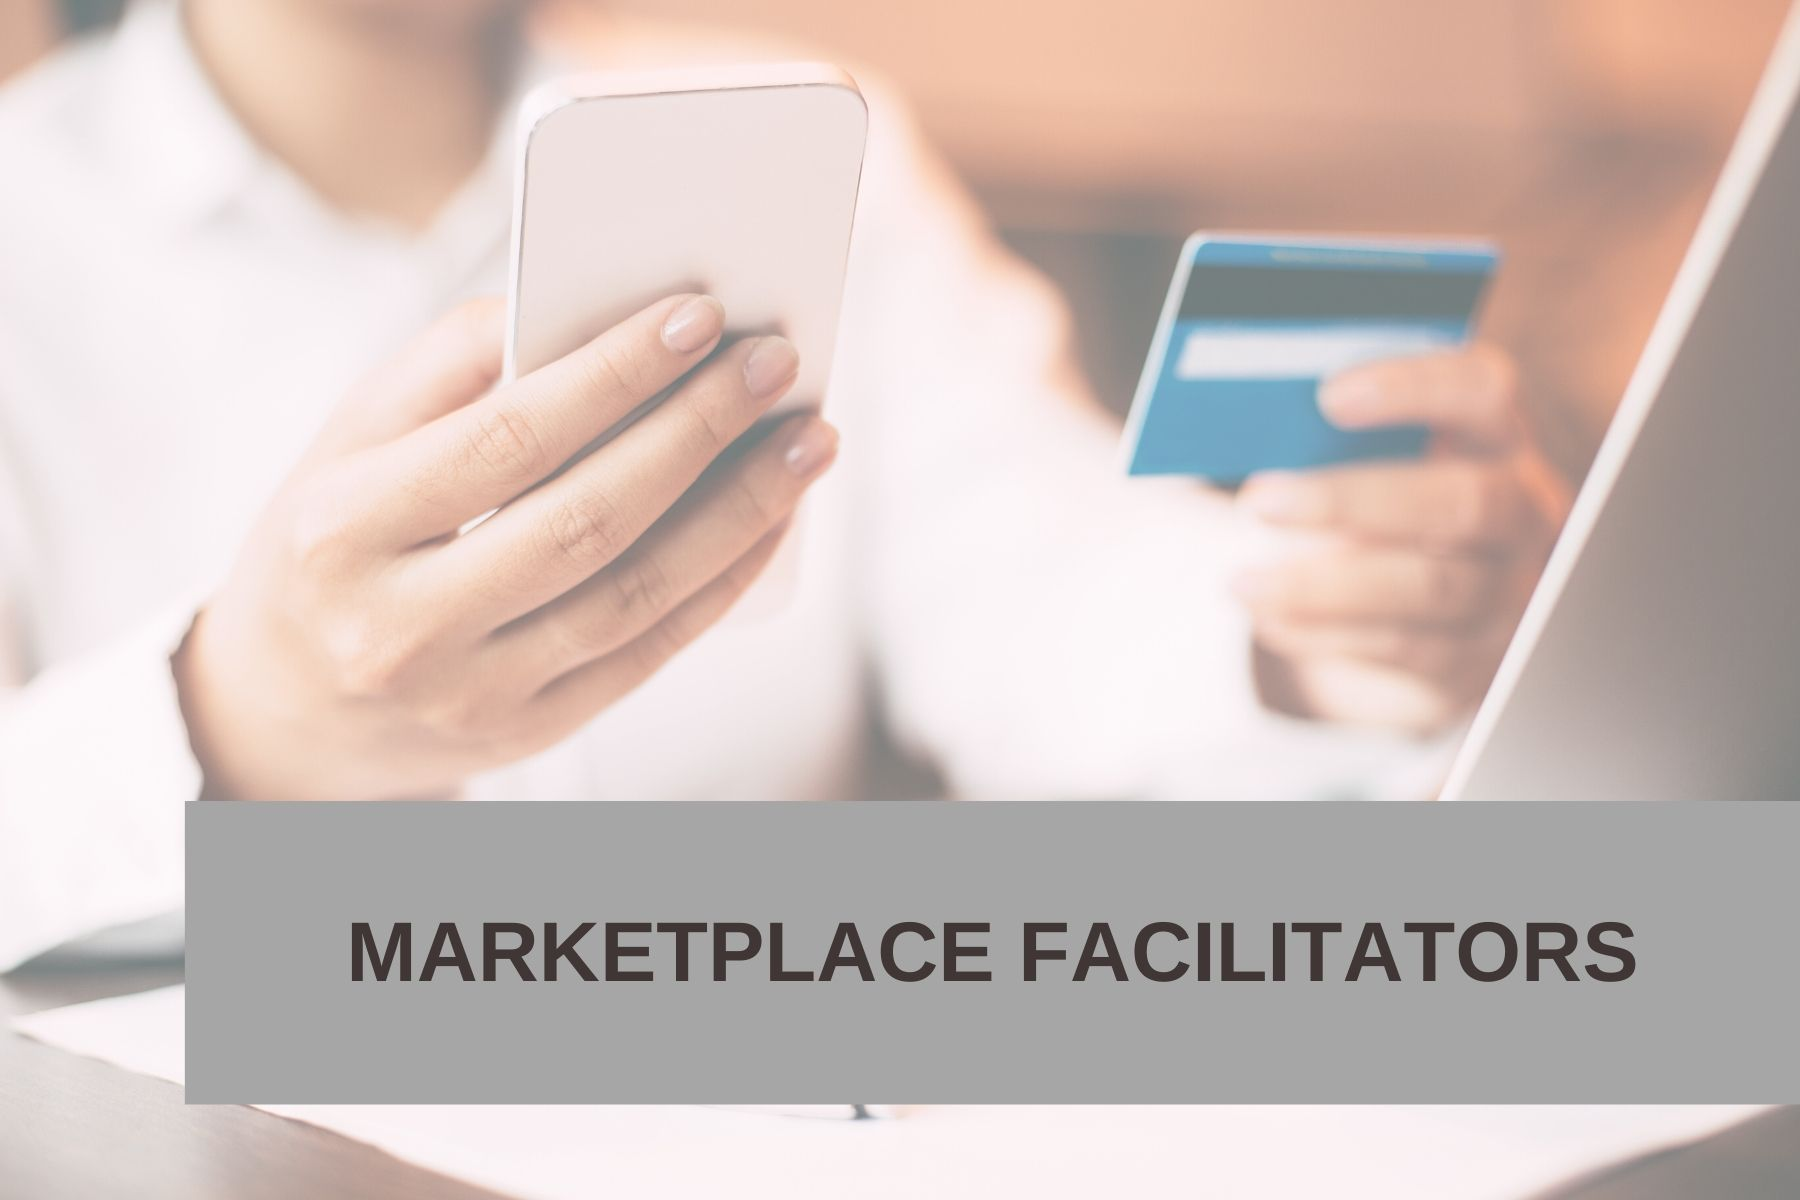 Marketplace Facilitators